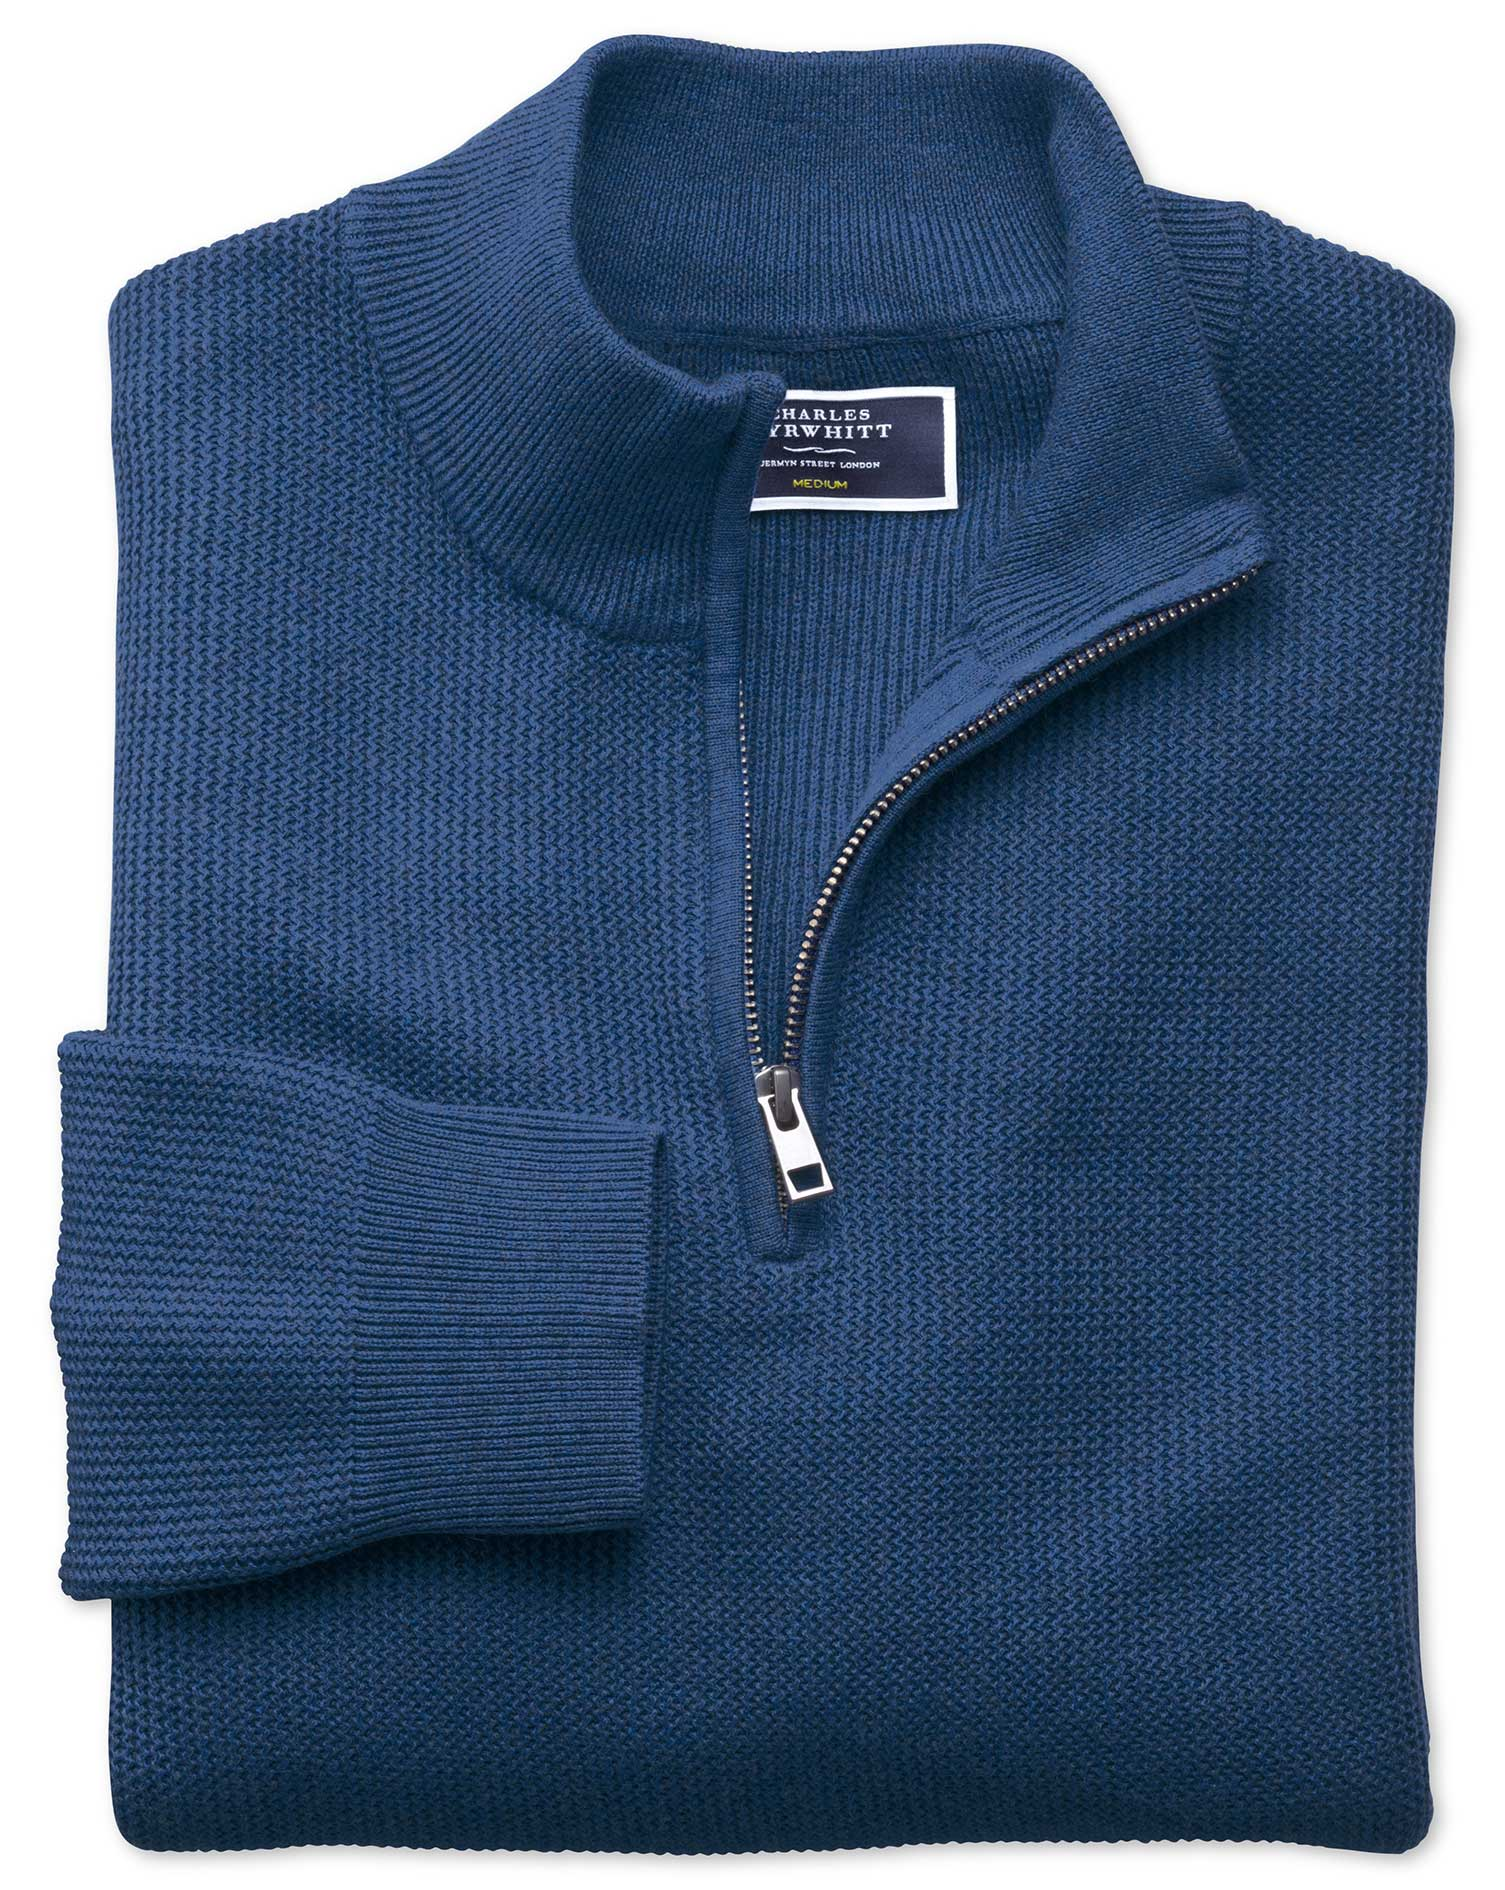 Blue Pima Cotton Textured Zip Neck Jumper Size Small by Charles Tyrwhitt